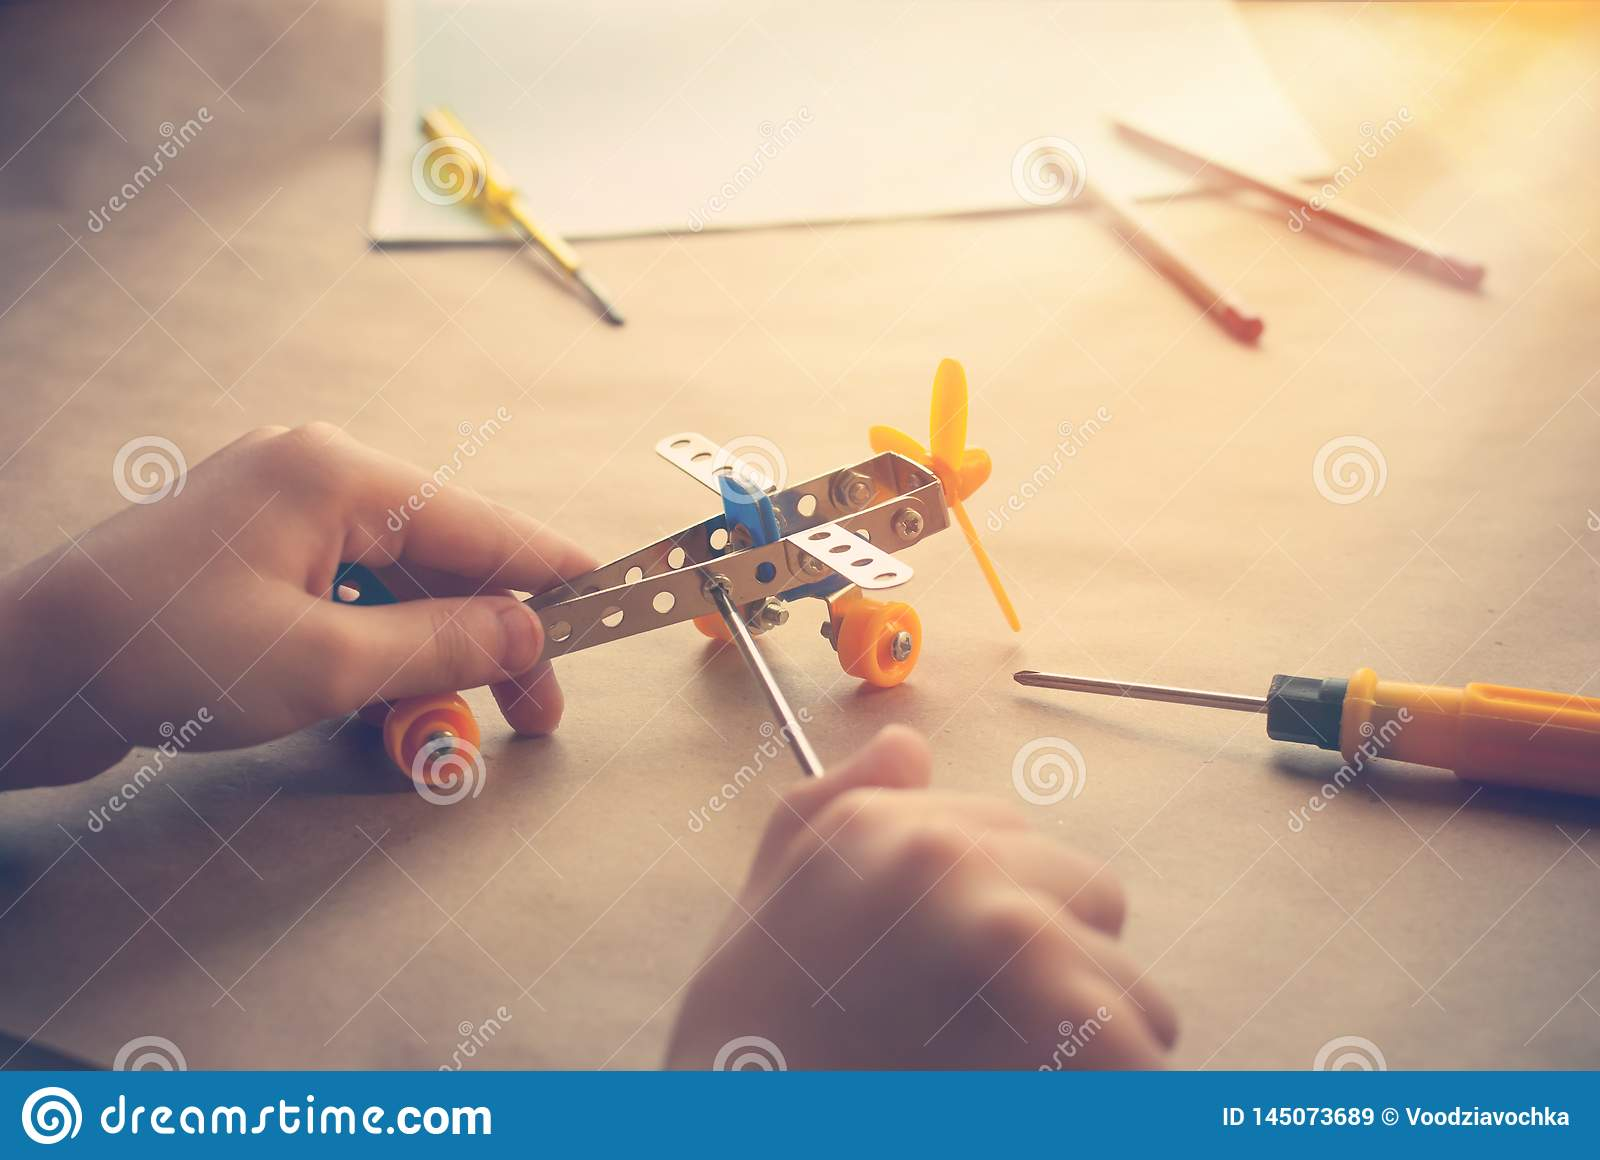 Children hands with Toy iron plane. Metal constructor with screwdrivers. Dream, play and create